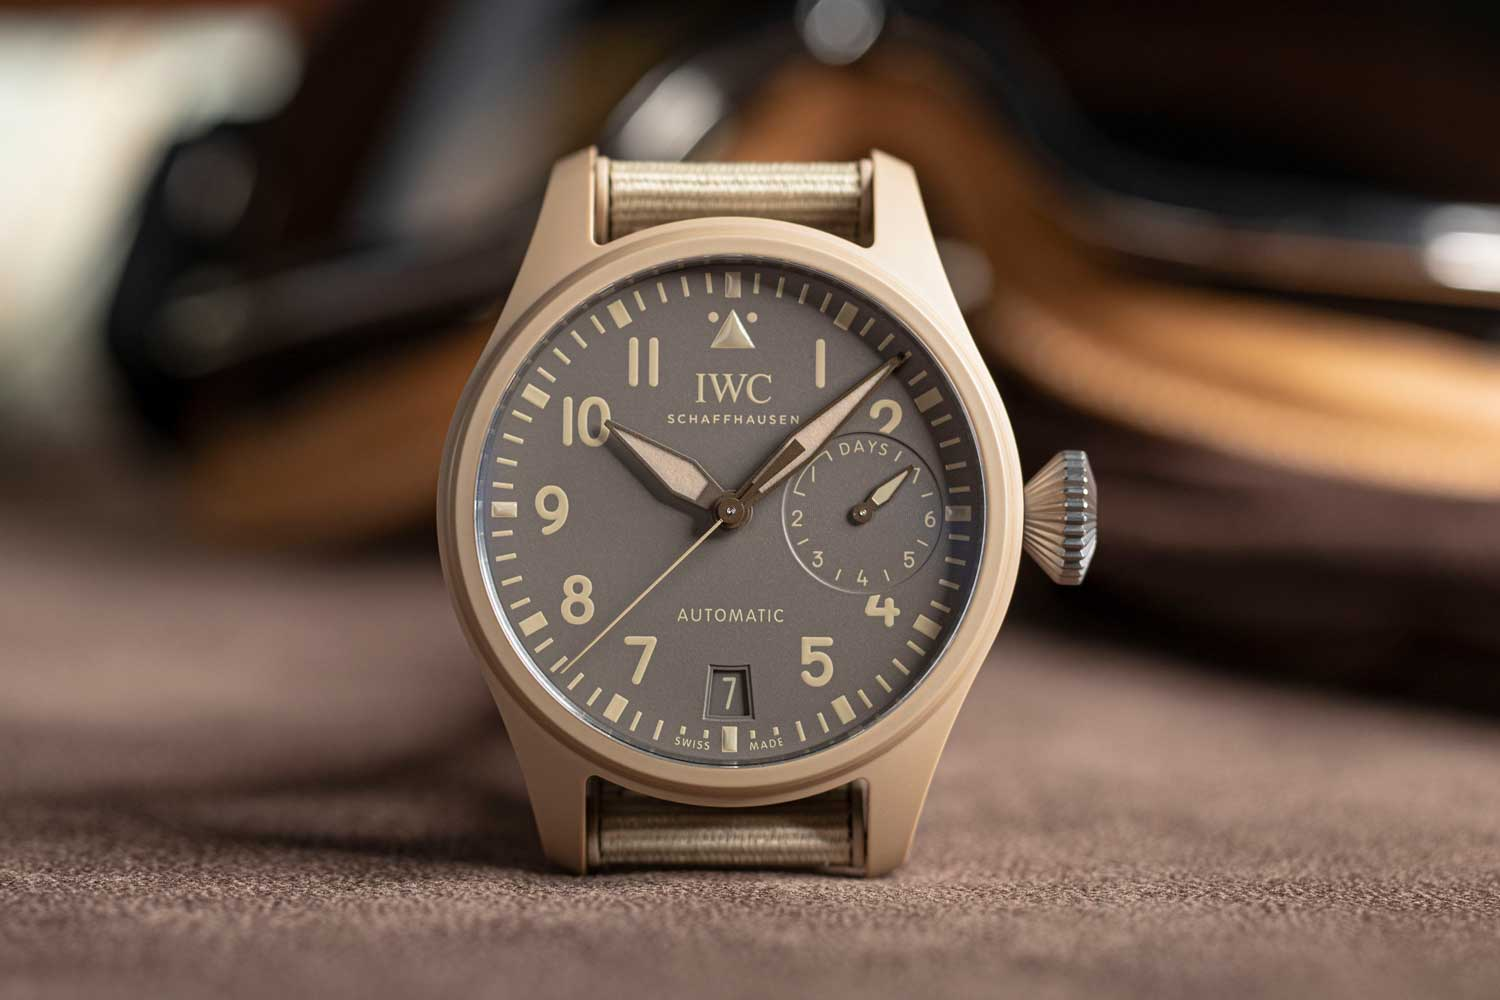 """The Big Pilot's Watch Top Gun Edition """"Mojave Desert"""" is a simpler version of the 'Mojave Desert' perpetual calendar watch with just the date and power reserve display on the dial.(Image: Revolution)"""